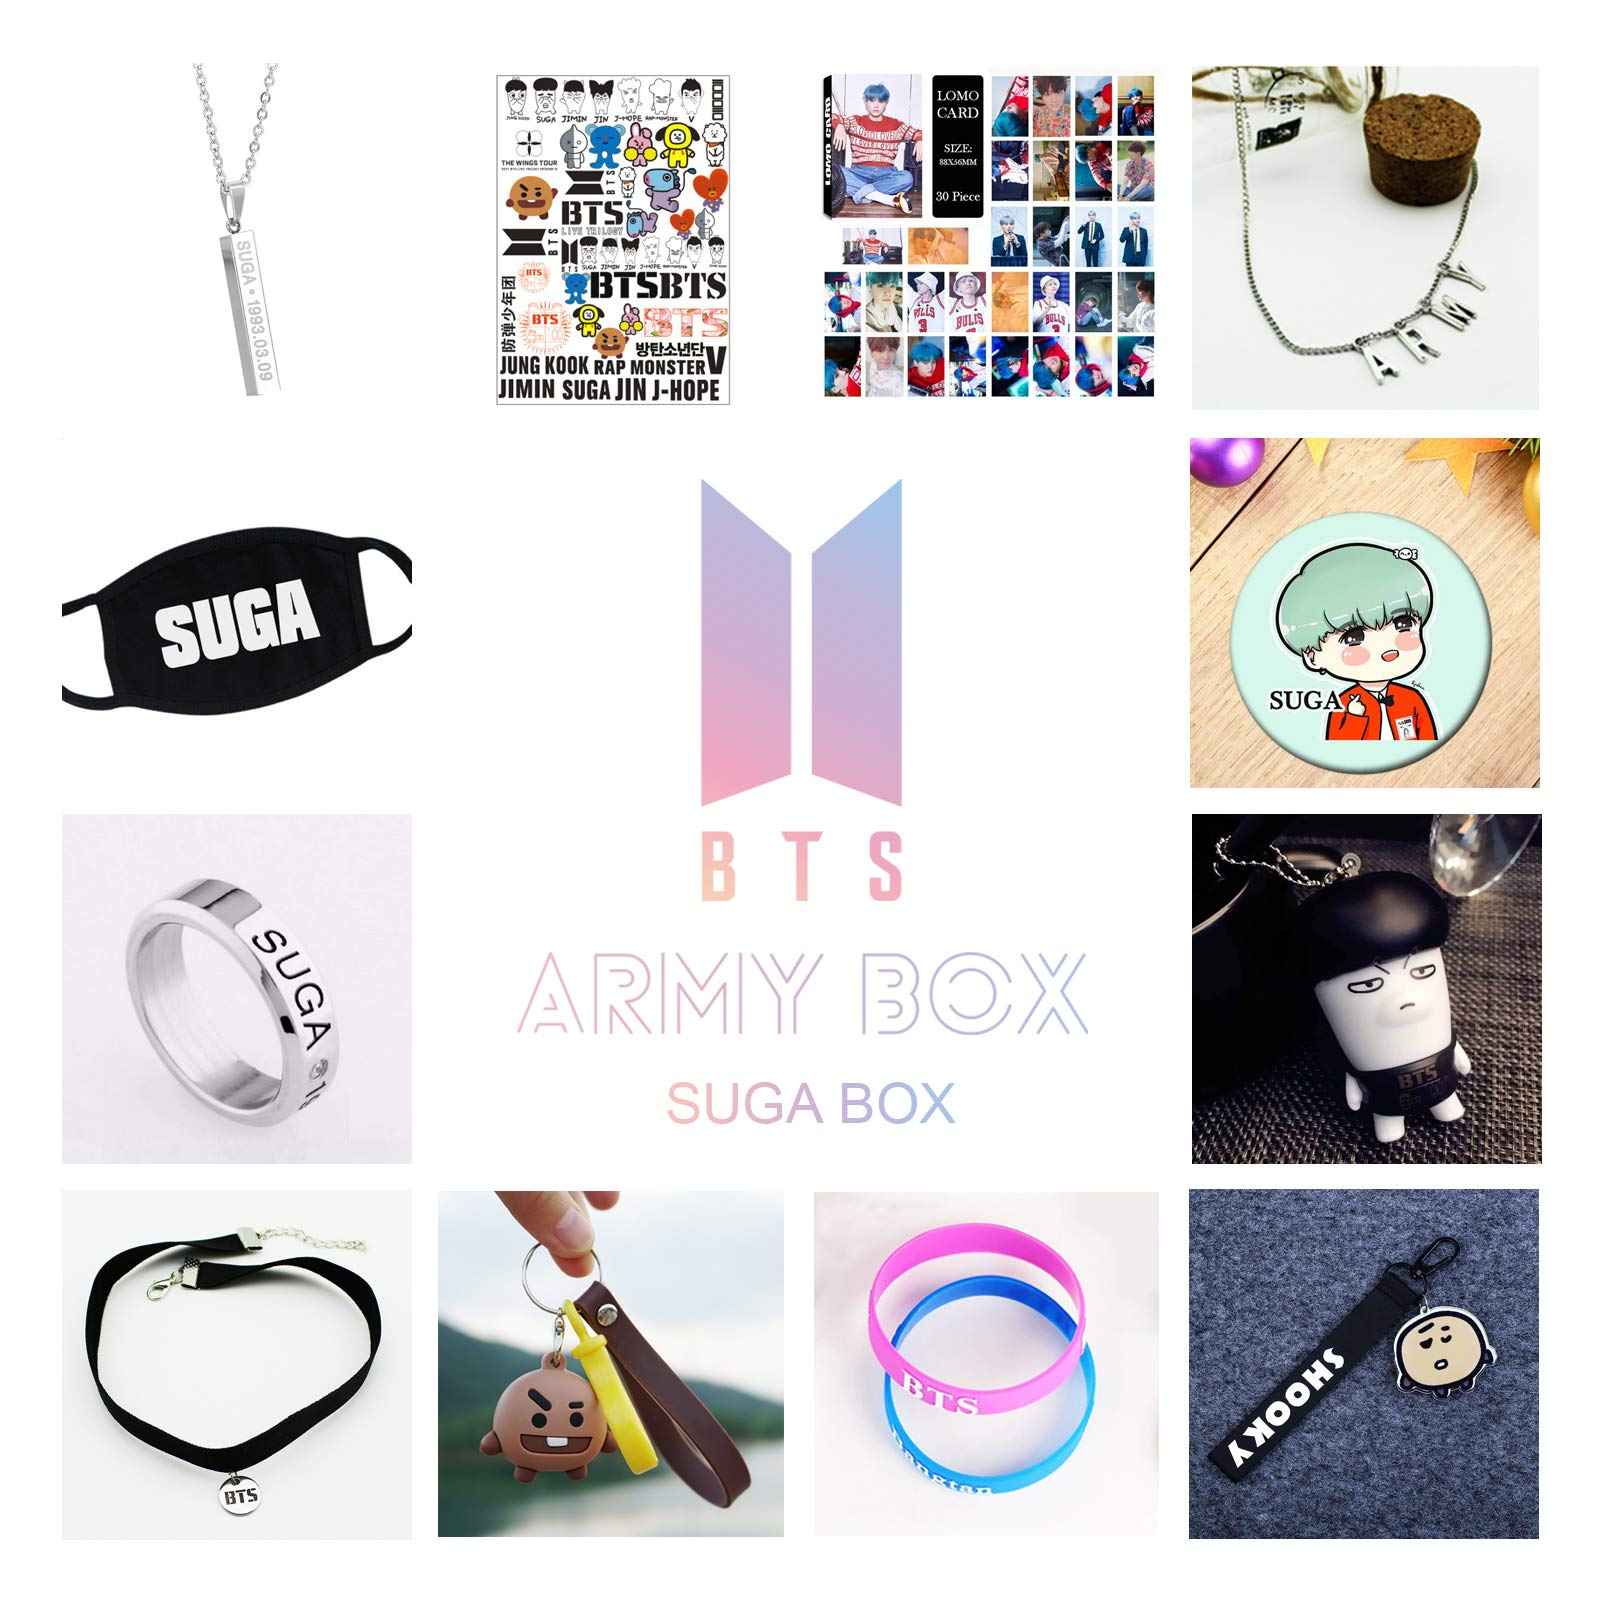 Kpop BTS Army Box Bangtan Boys BTS Album High Guality Gift Case for Jungkook Jimin V Bracelet Button Necklace (93 SUGA Box) by AIIVPO (Image #2)